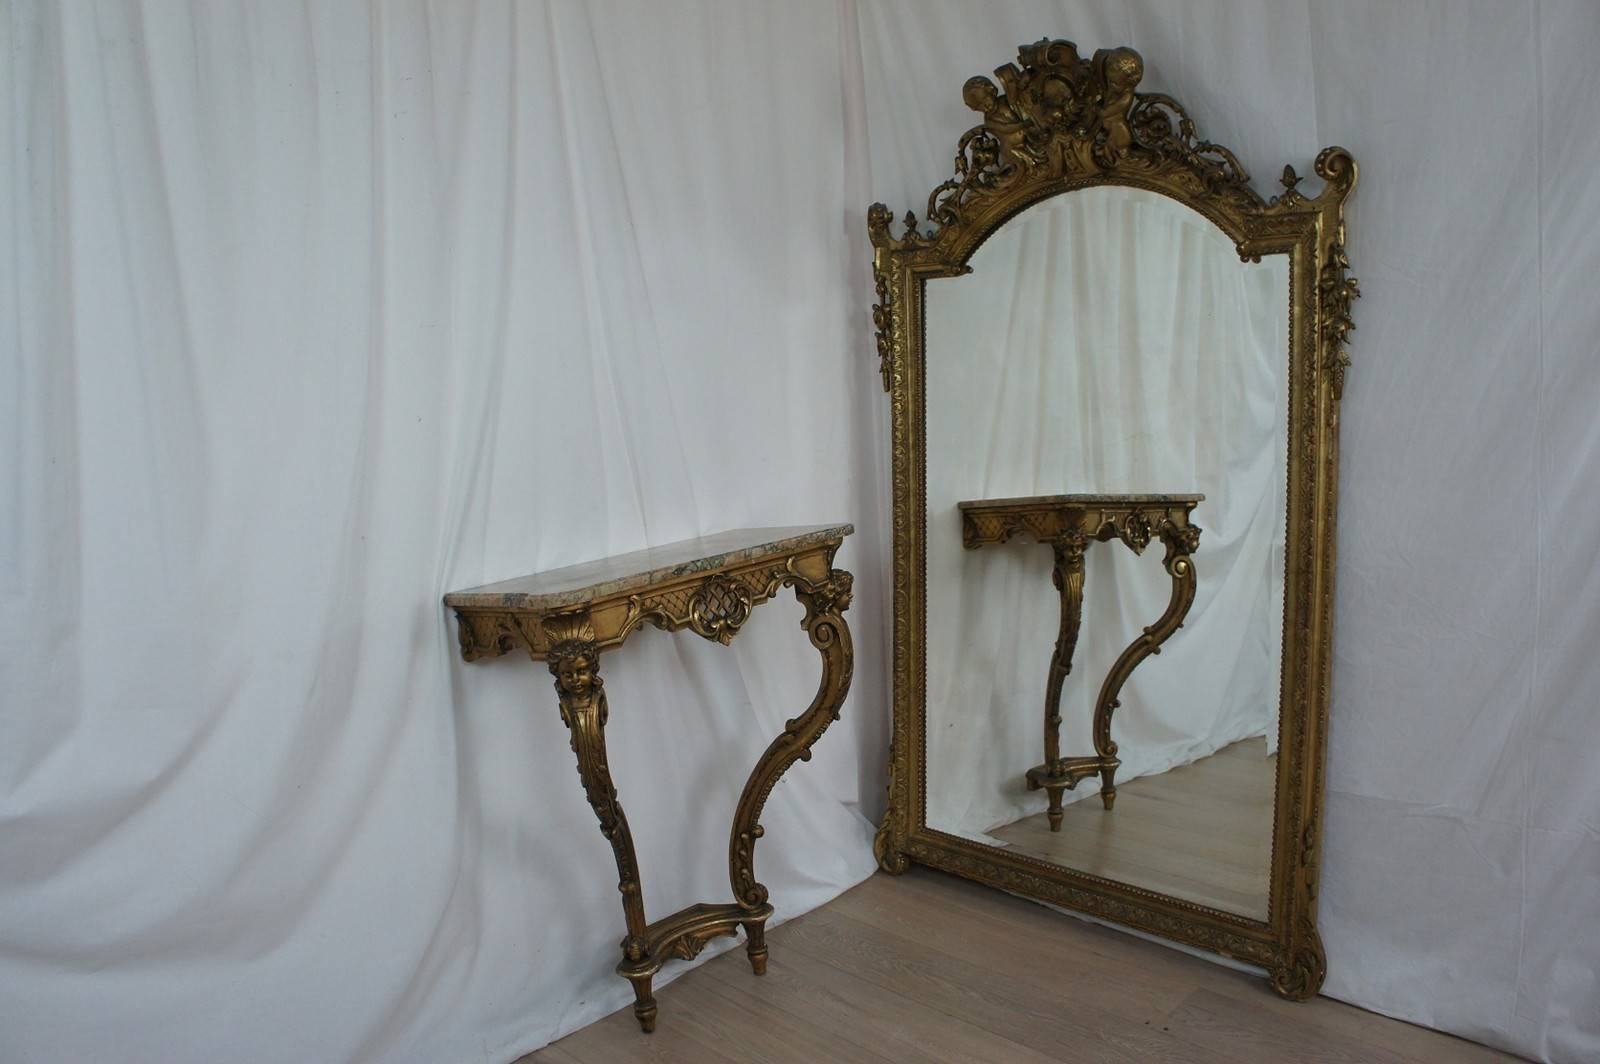 Large French Cherub Mirror - The Hoarde for French Vintage Mirrors (Image 12 of 15)